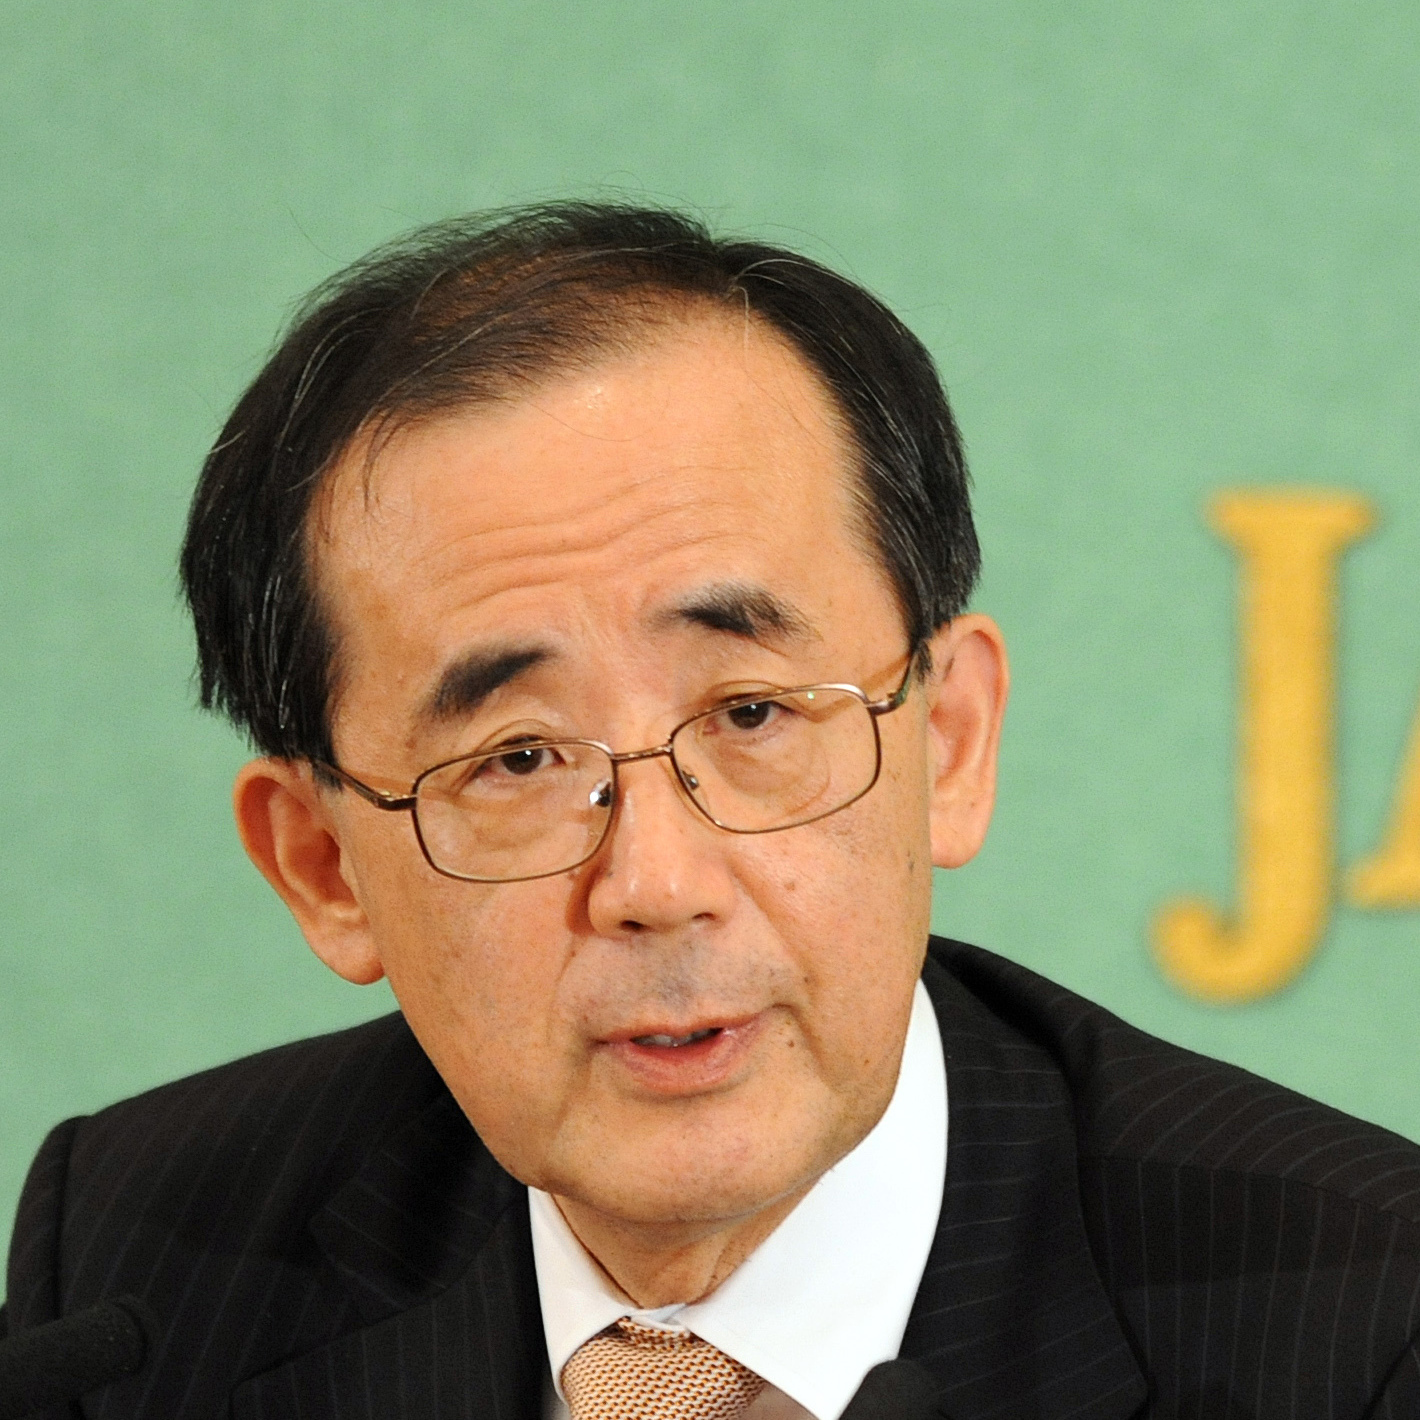 Bank of Japan (BOJ) Governor Masaaki Shirakawa speaks before the press in Tokyo on January 25, 2013. Shirakawa said that the two-percent target is hard to achieve because it needs various efforts including those by the government in reforms in regulations that could be politically difficult. AFP PHOTO / RIE ISHIIRIE ISHII/AFP/Getty Images